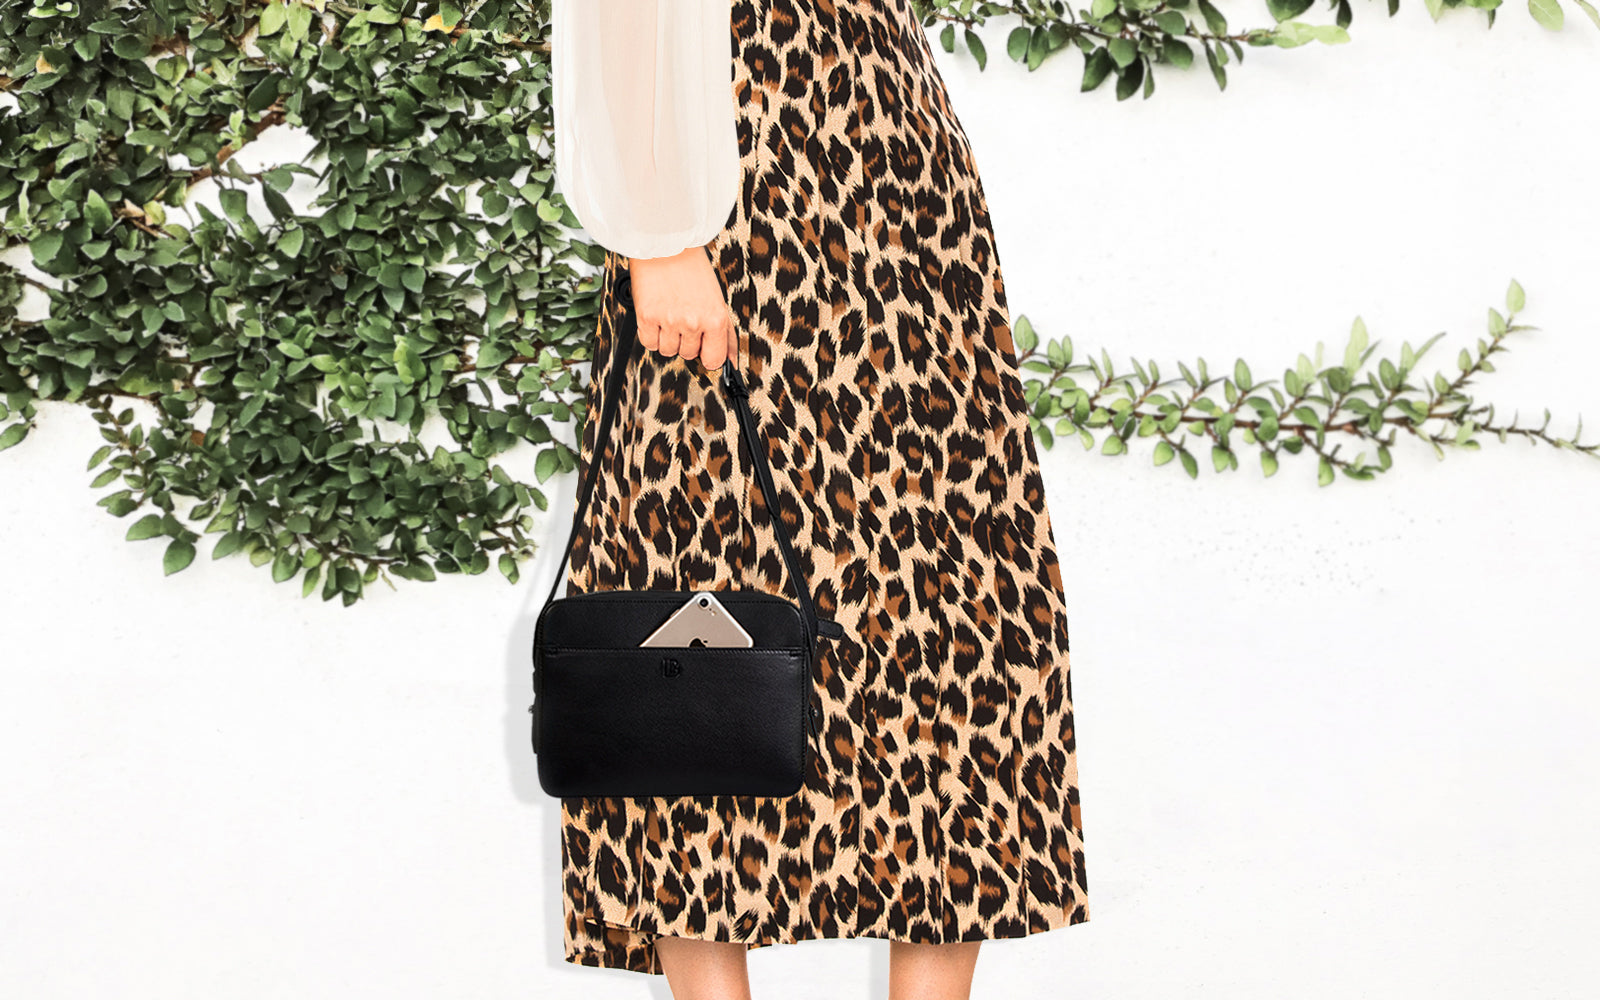 spring racing black leather bag with phone charger animal print midi skirt